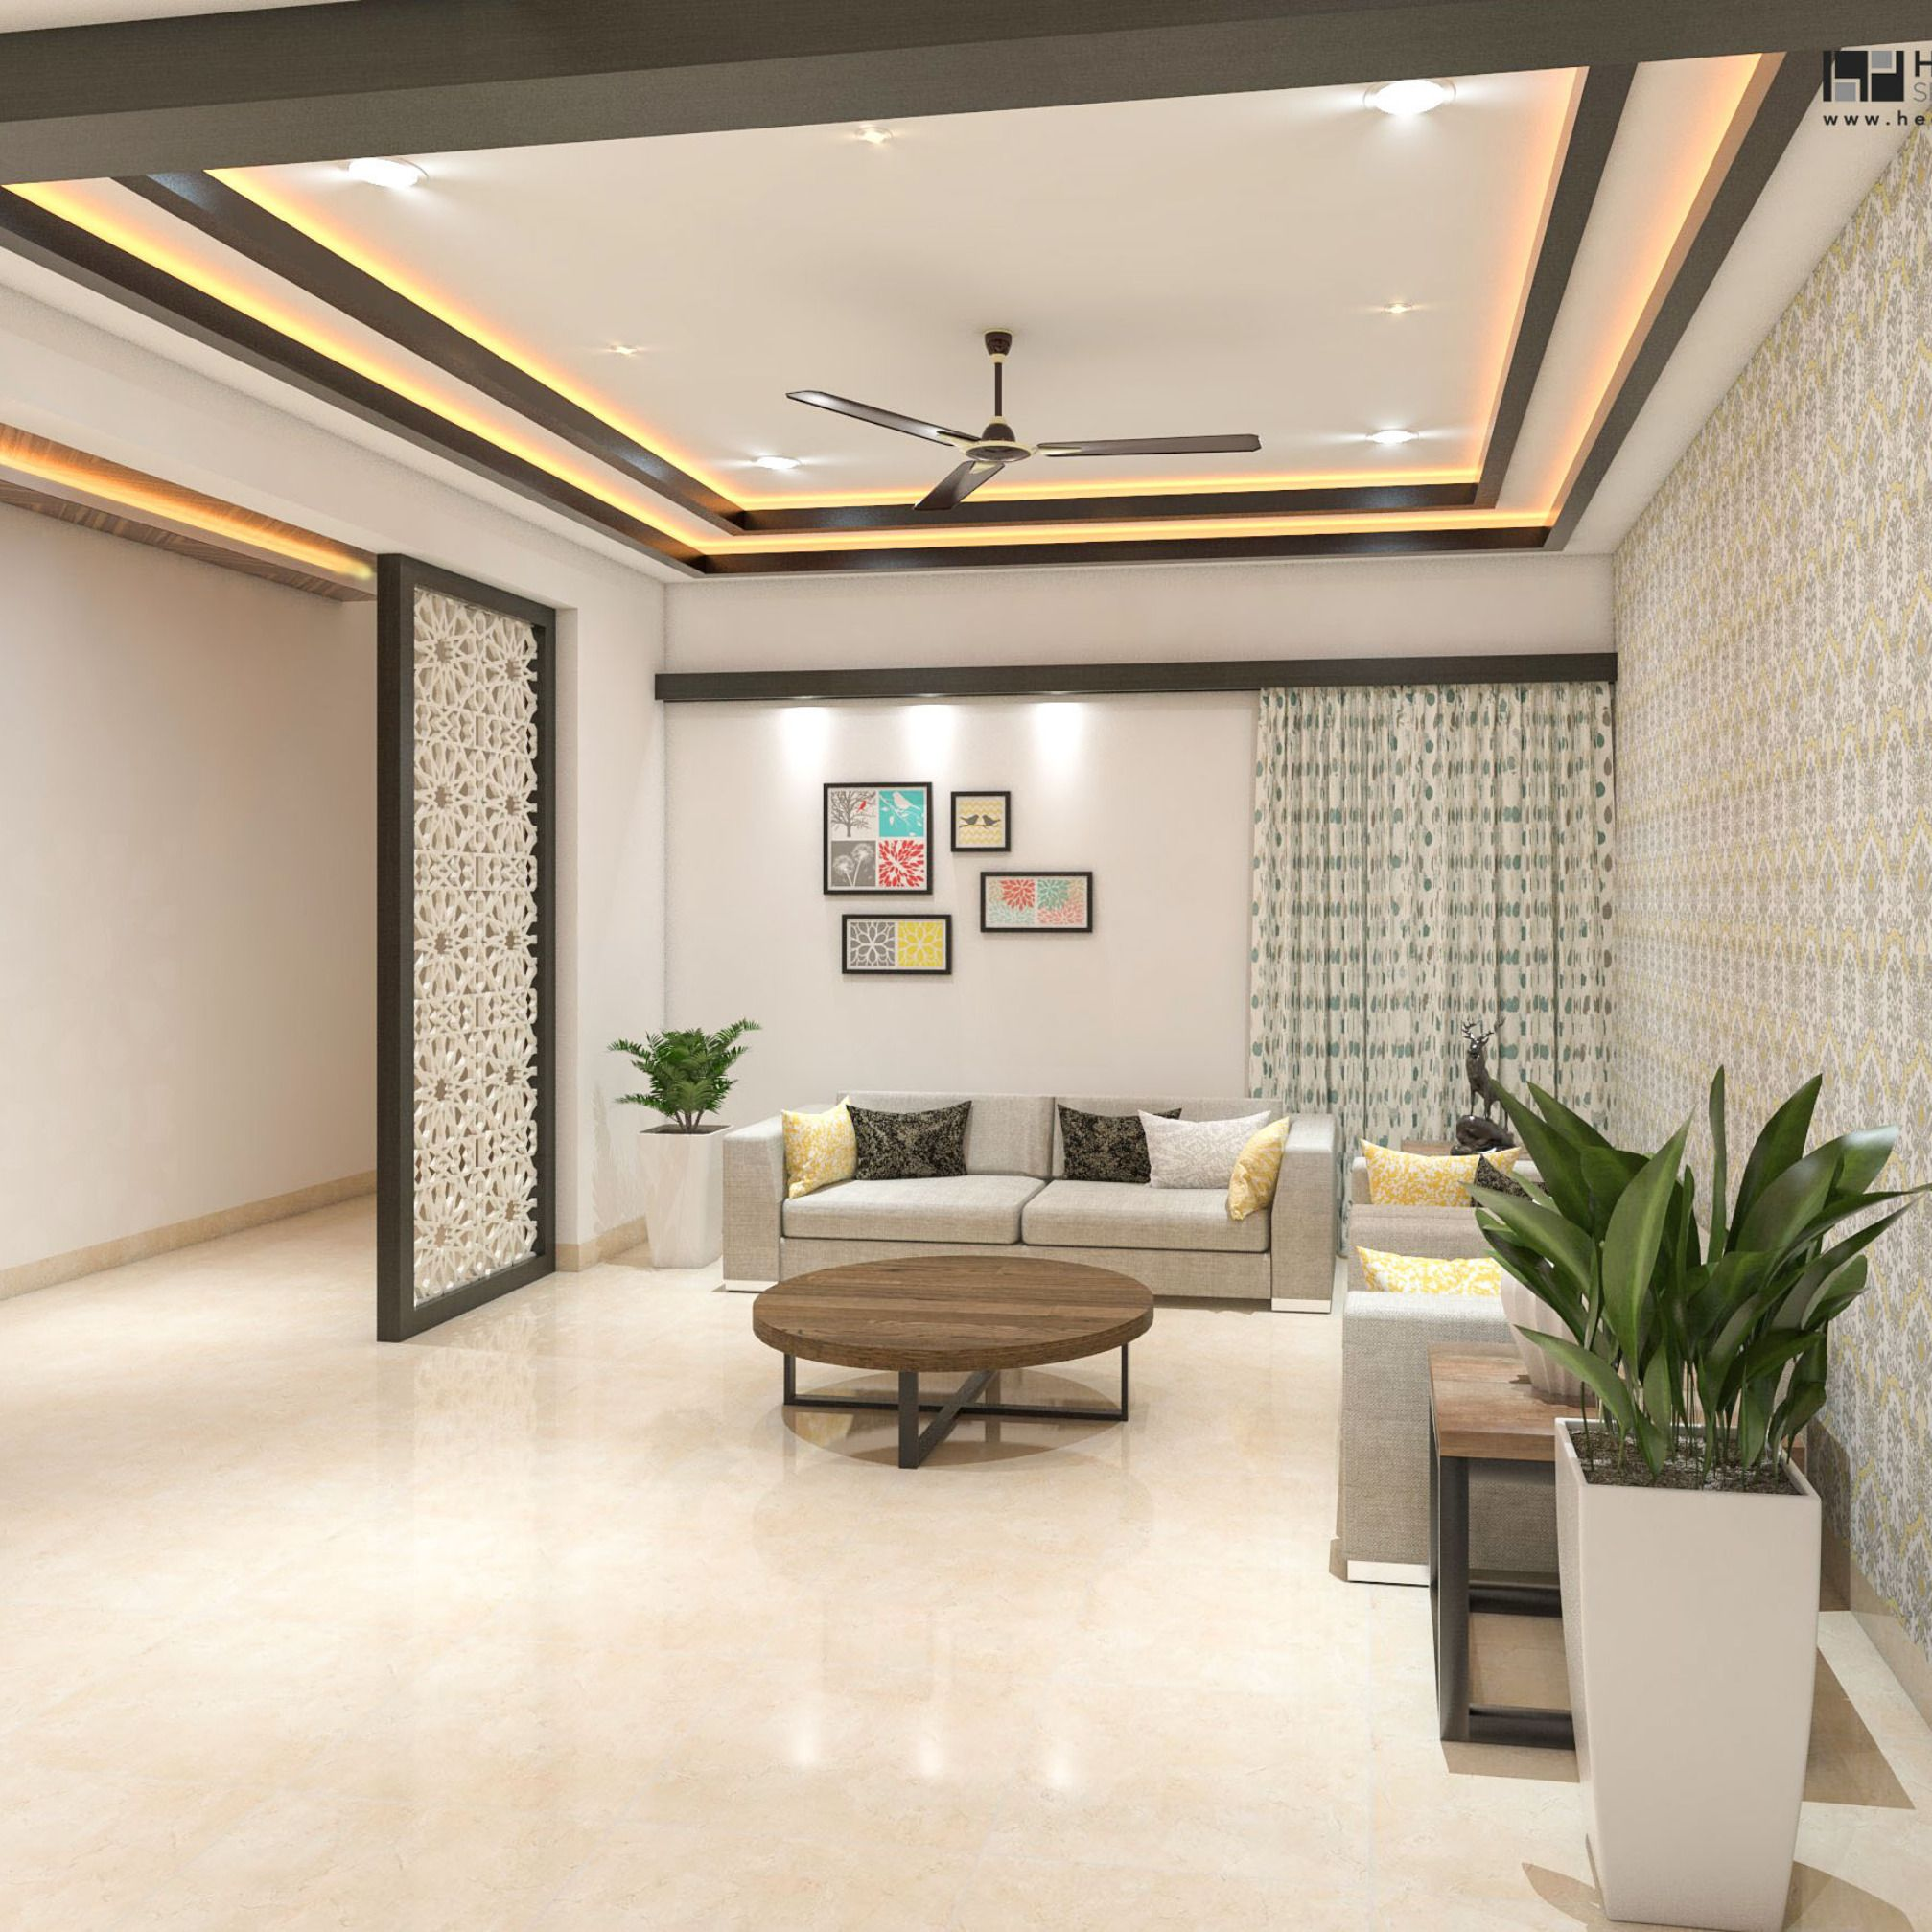 Modern Simple And Stunning False Ceiling Designs For Bedroom